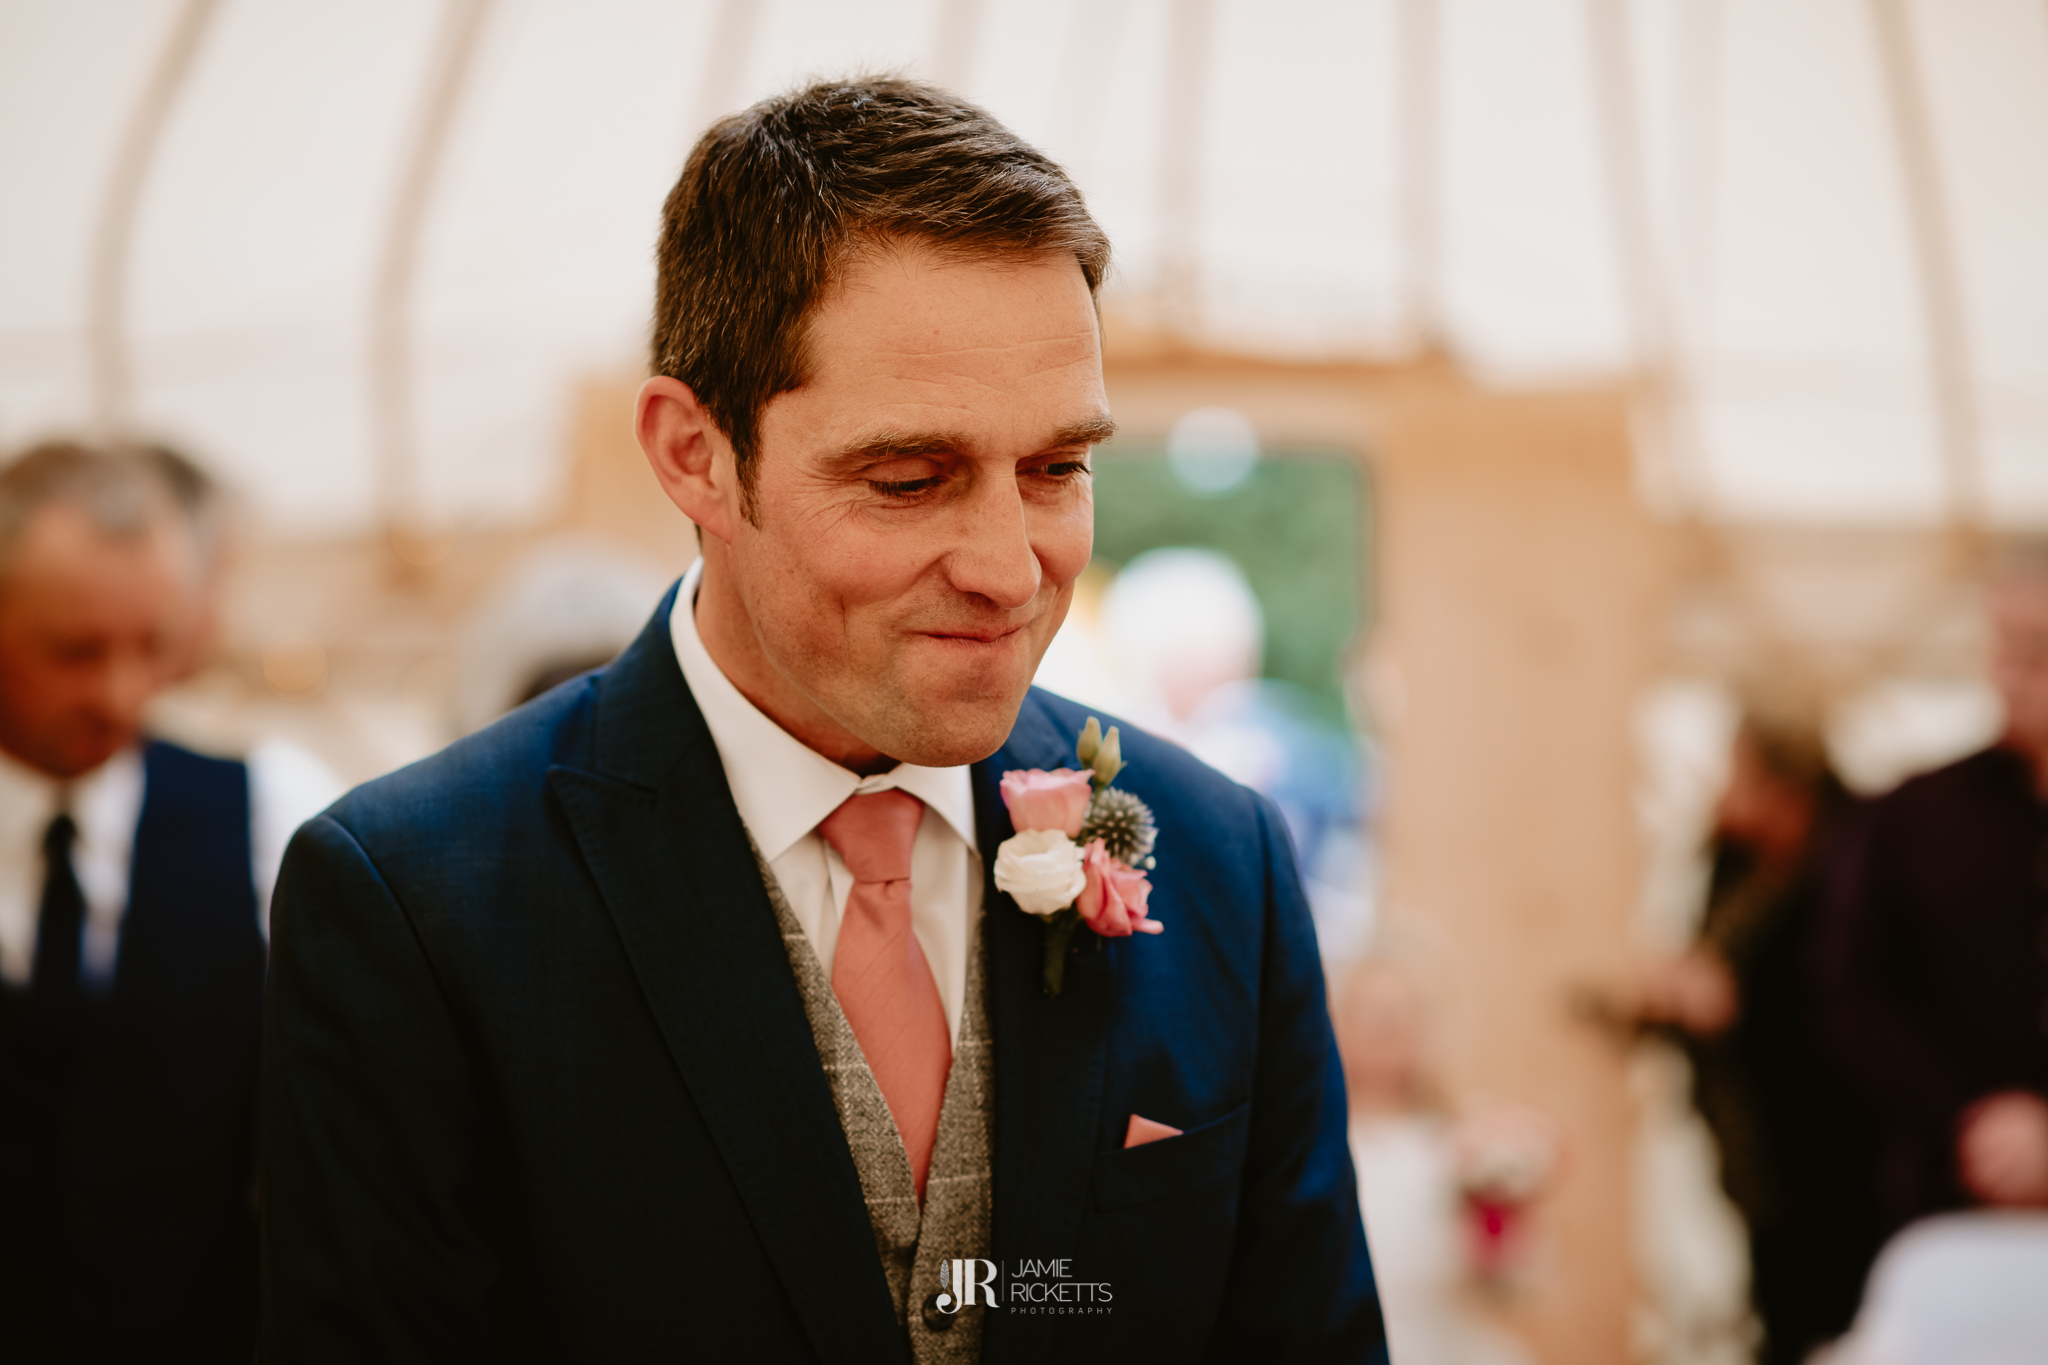 Wroxeter-Hotel-Wedding-Photography-In-Shropshire-By-Shropshire-Wedding-Photographer-Jamie-Ricketts-051.JPG